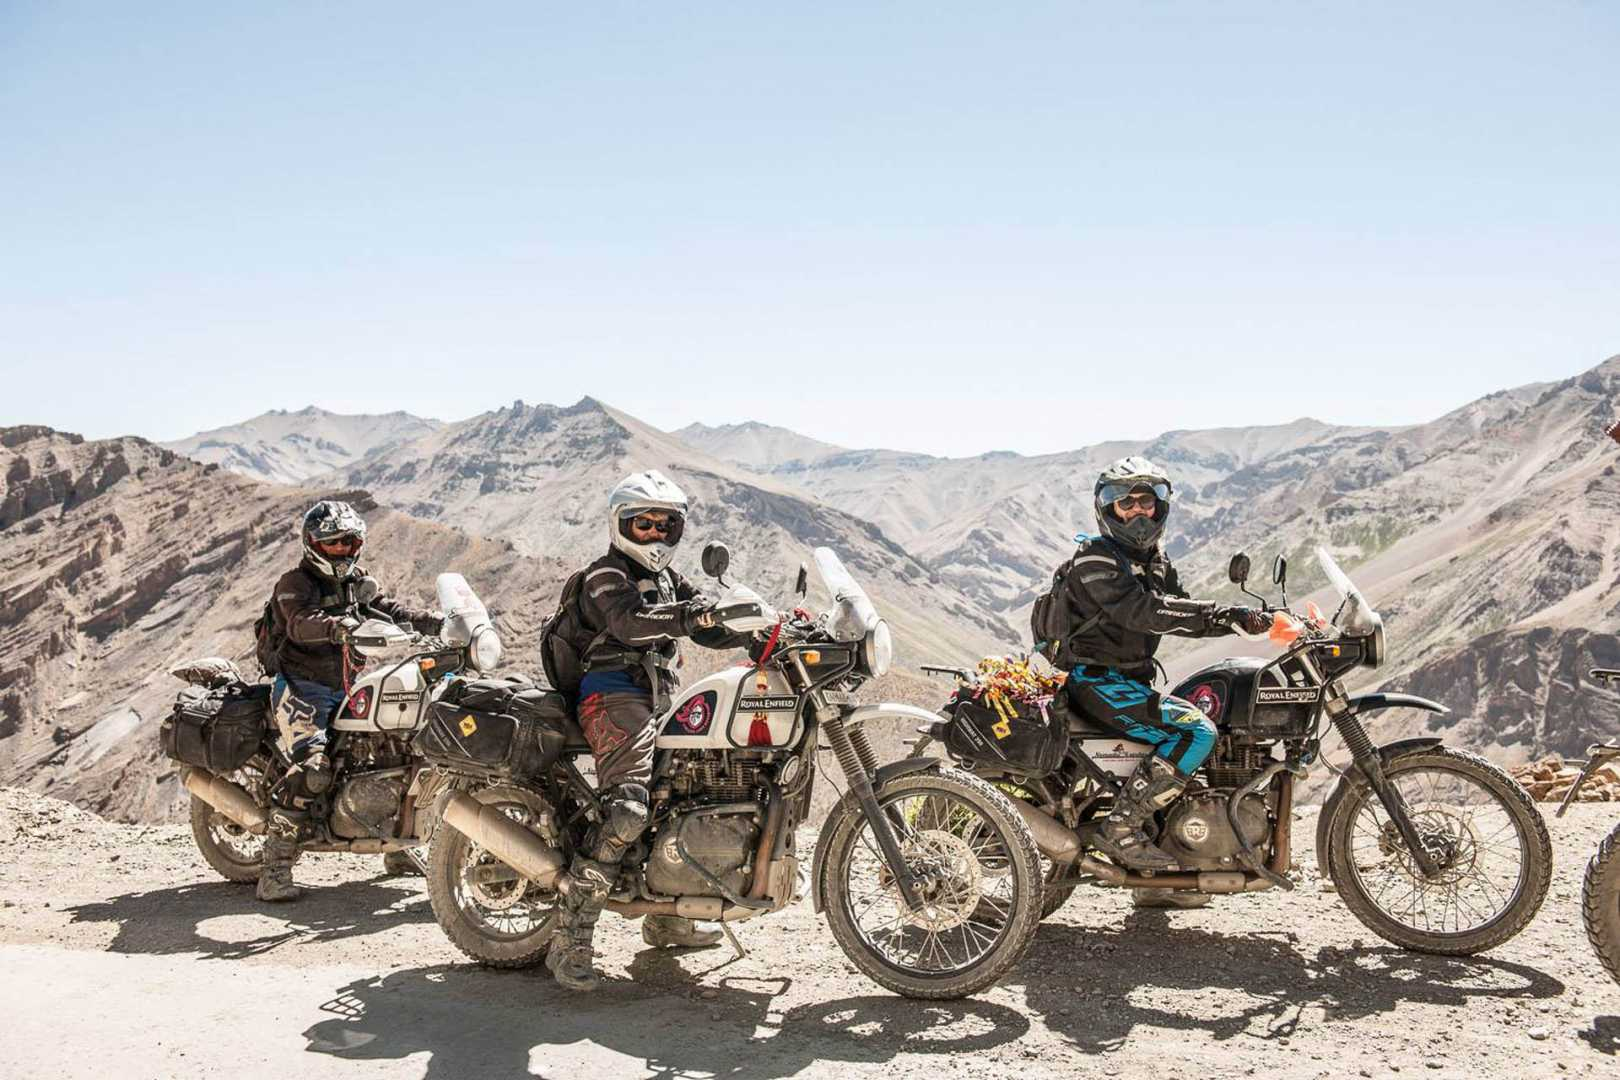 Motorcyclists in the Himalayas